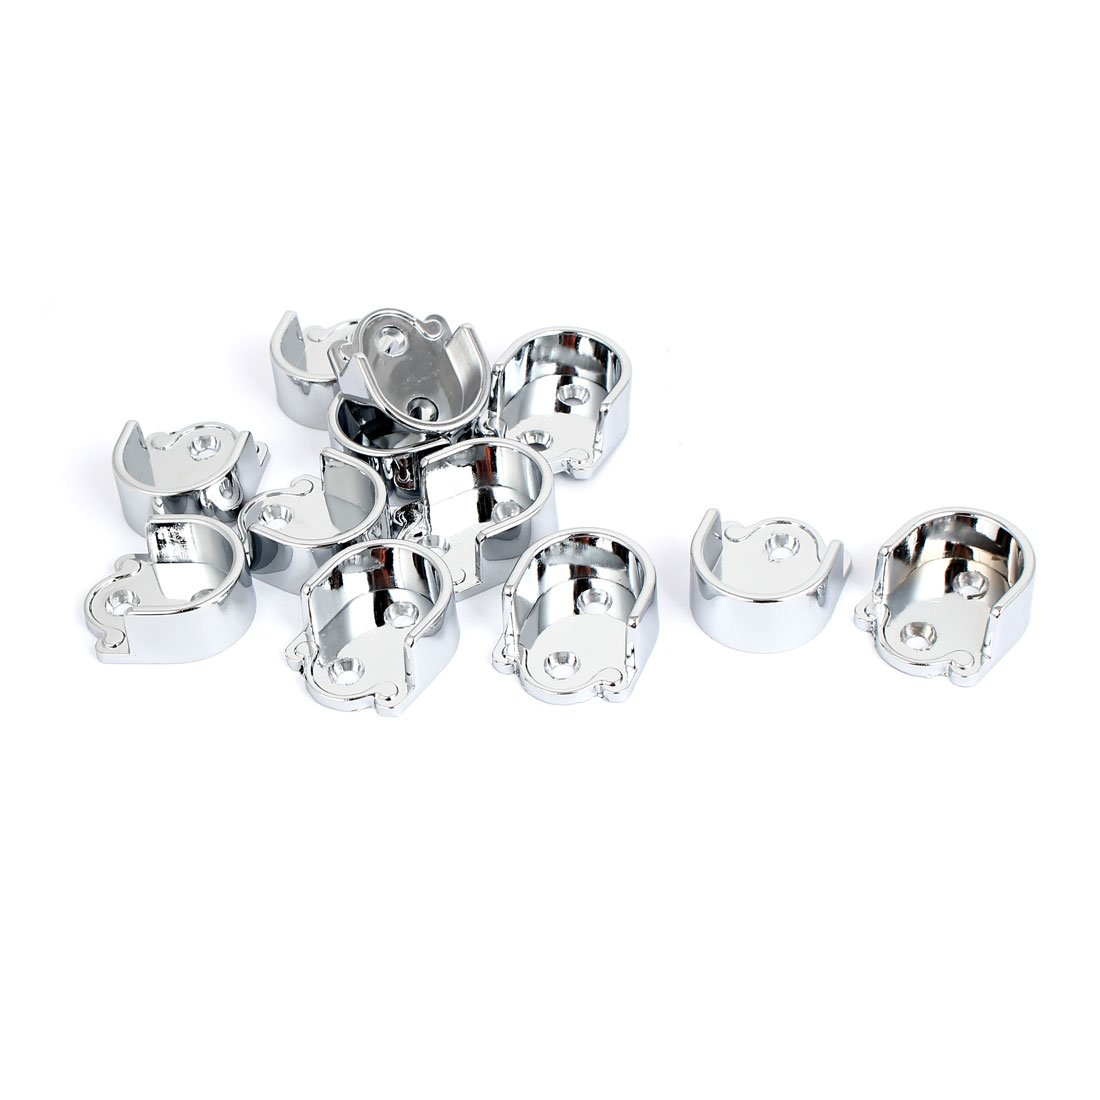 uxcell 25mm Dia Clothes Closet Rod Flange Holder Bracket Silver Tone 12pcs by uxcell (Image #1)